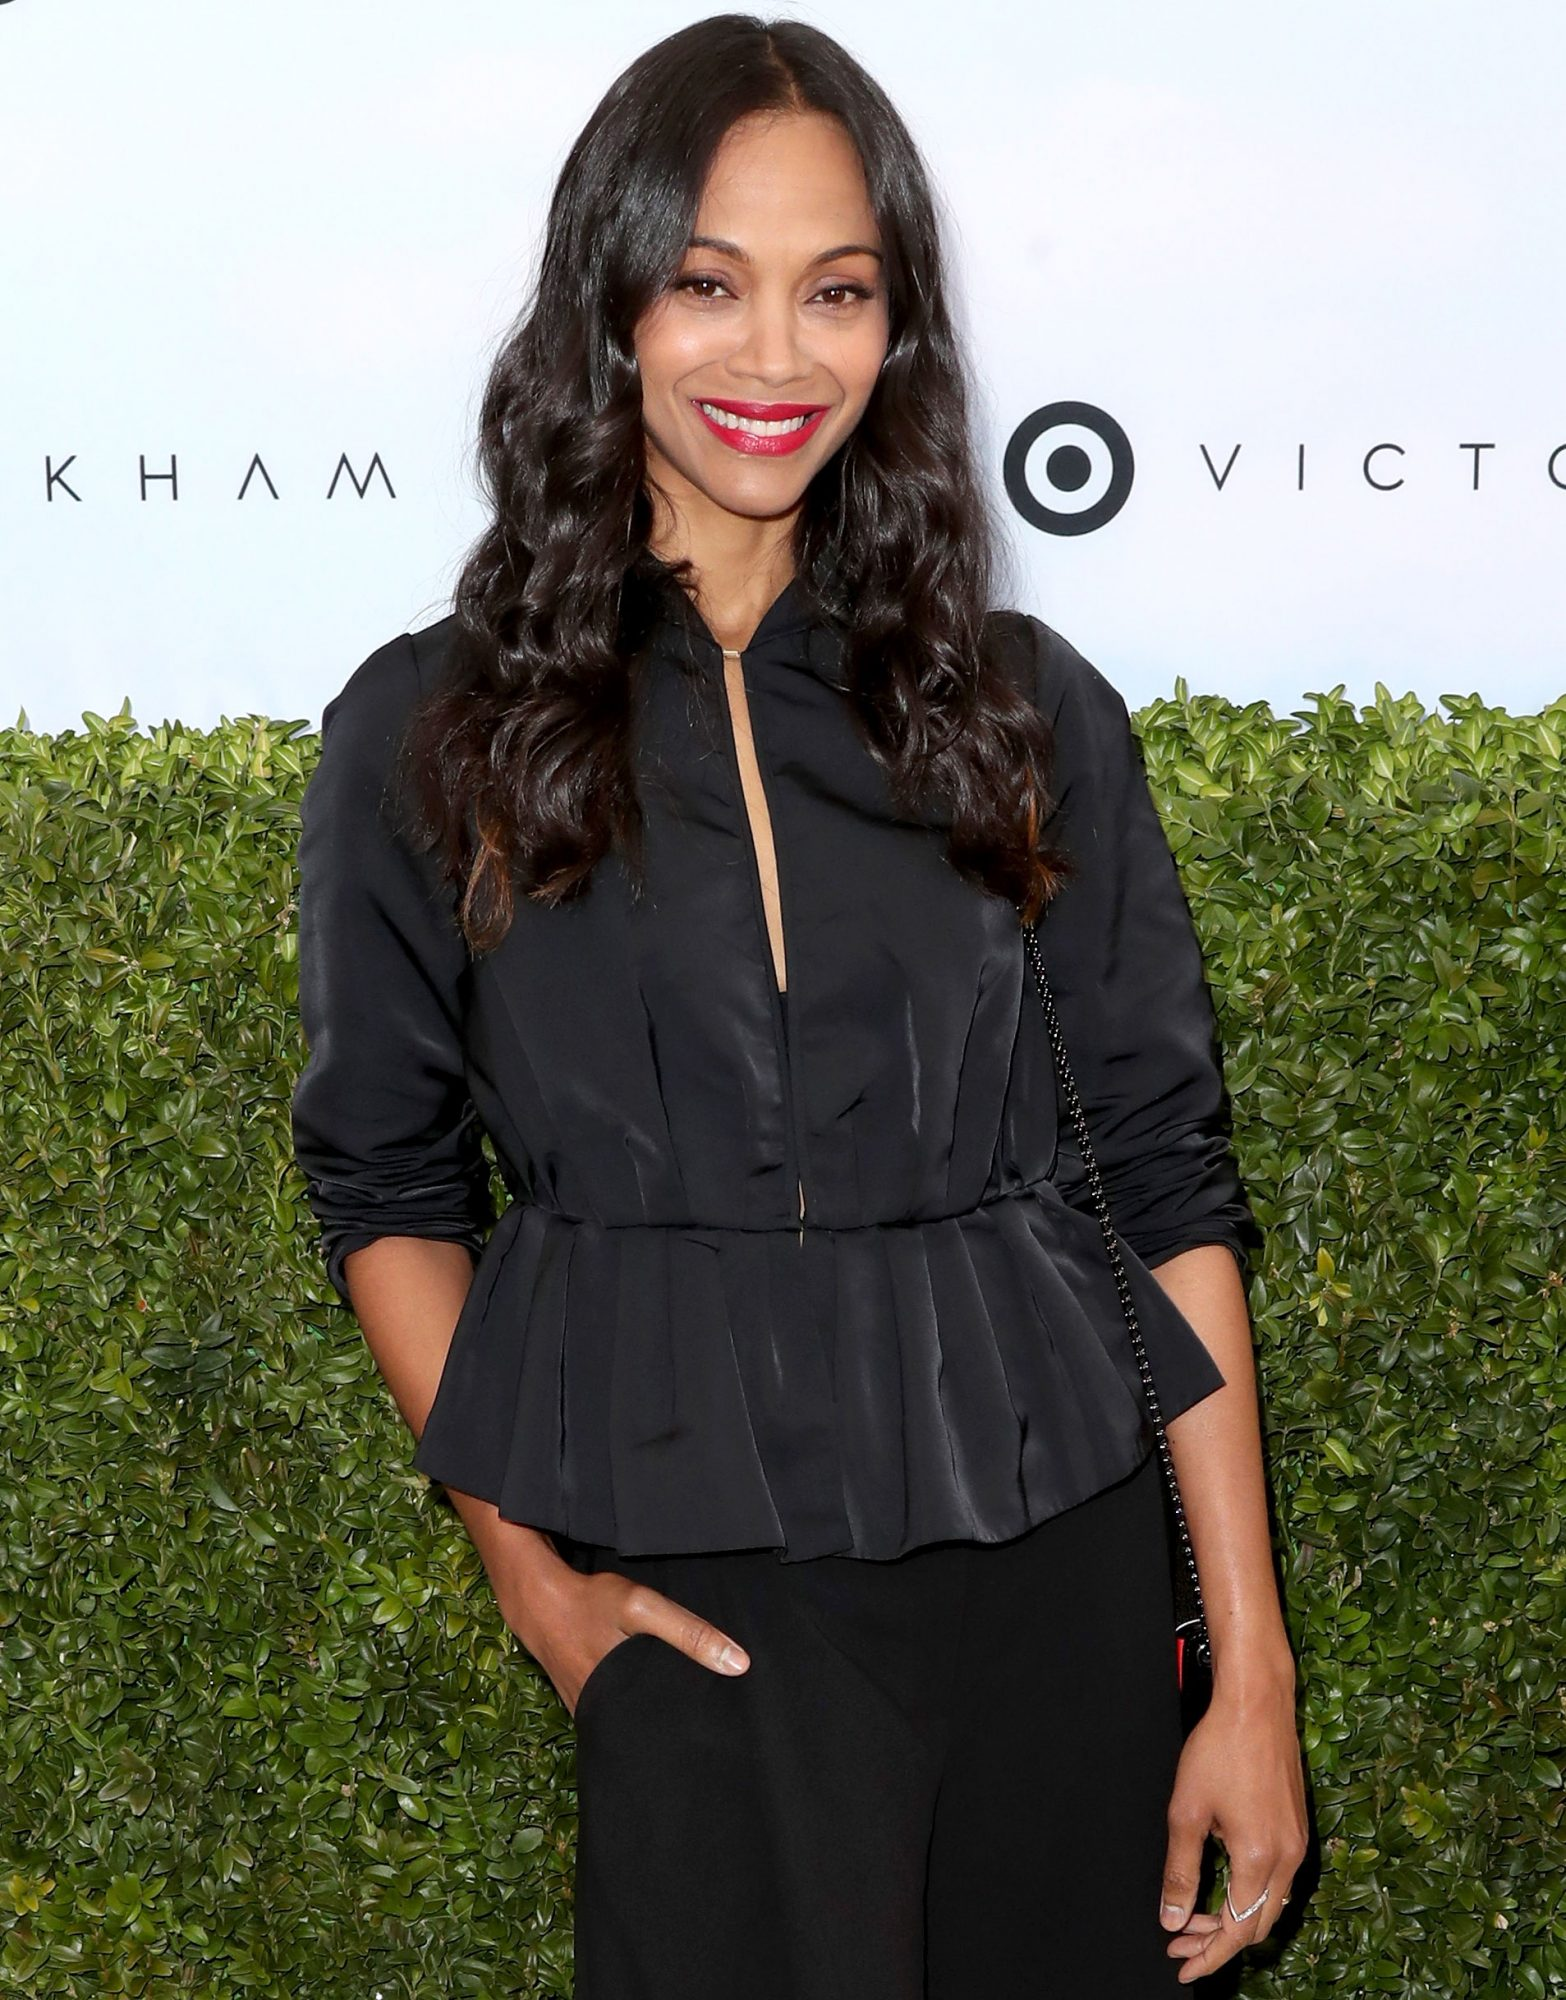 ZOE SALDANA: GET A BOOST IF YOU'RE A GIRL ON TOP